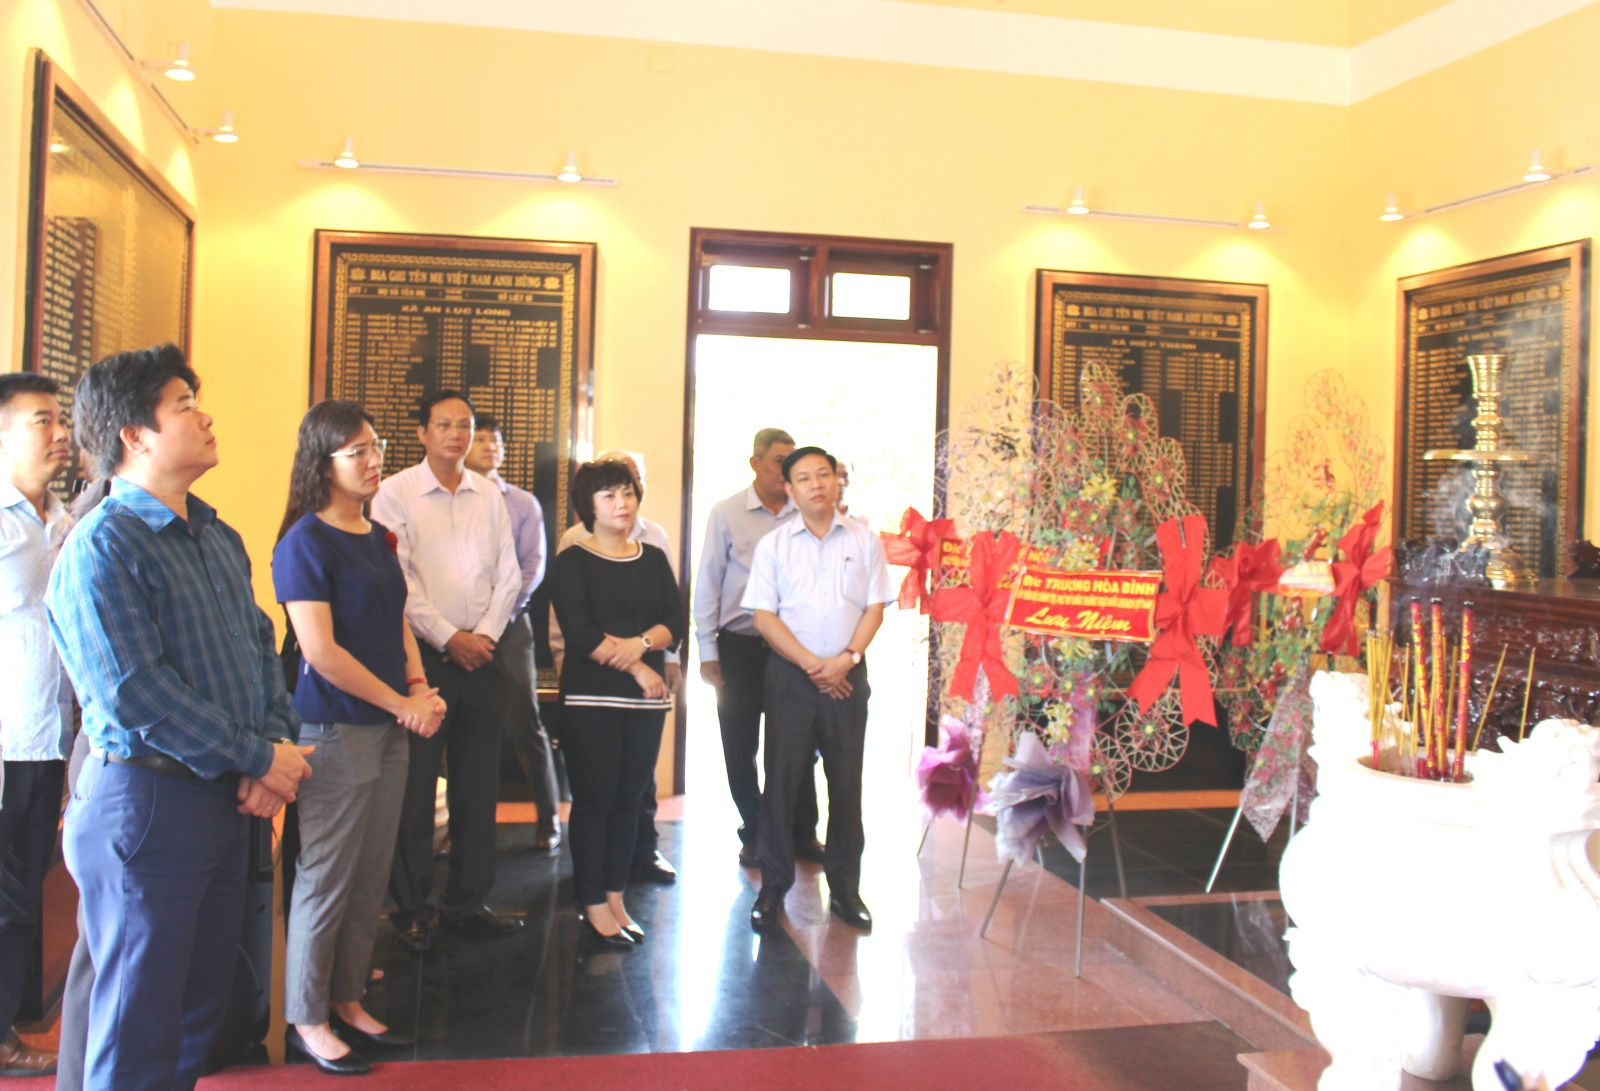 The delegation visits the House for showing gratitude for Vietnamese Heroic Mothers of Chau Thanh district